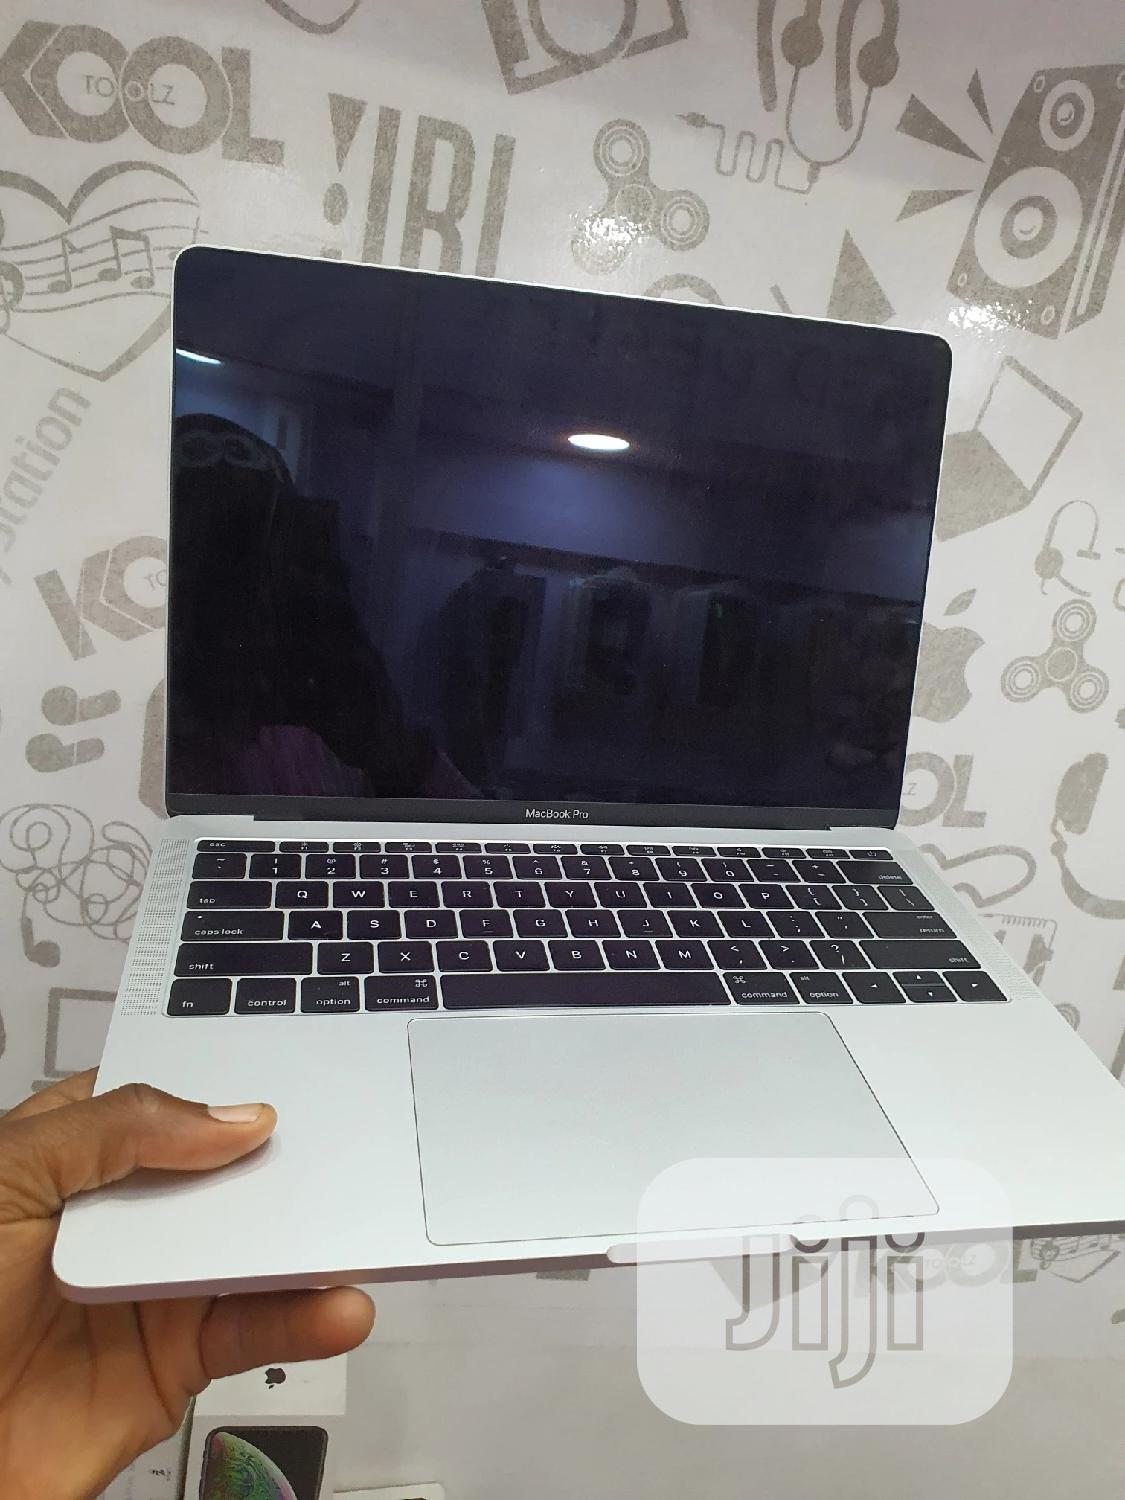 Laptop Apple MacBook Pro 8GB Intel Core i5 SSD 256GB | Laptops & Computers for sale in Wuse 2, Abuja (FCT) State, Nigeria